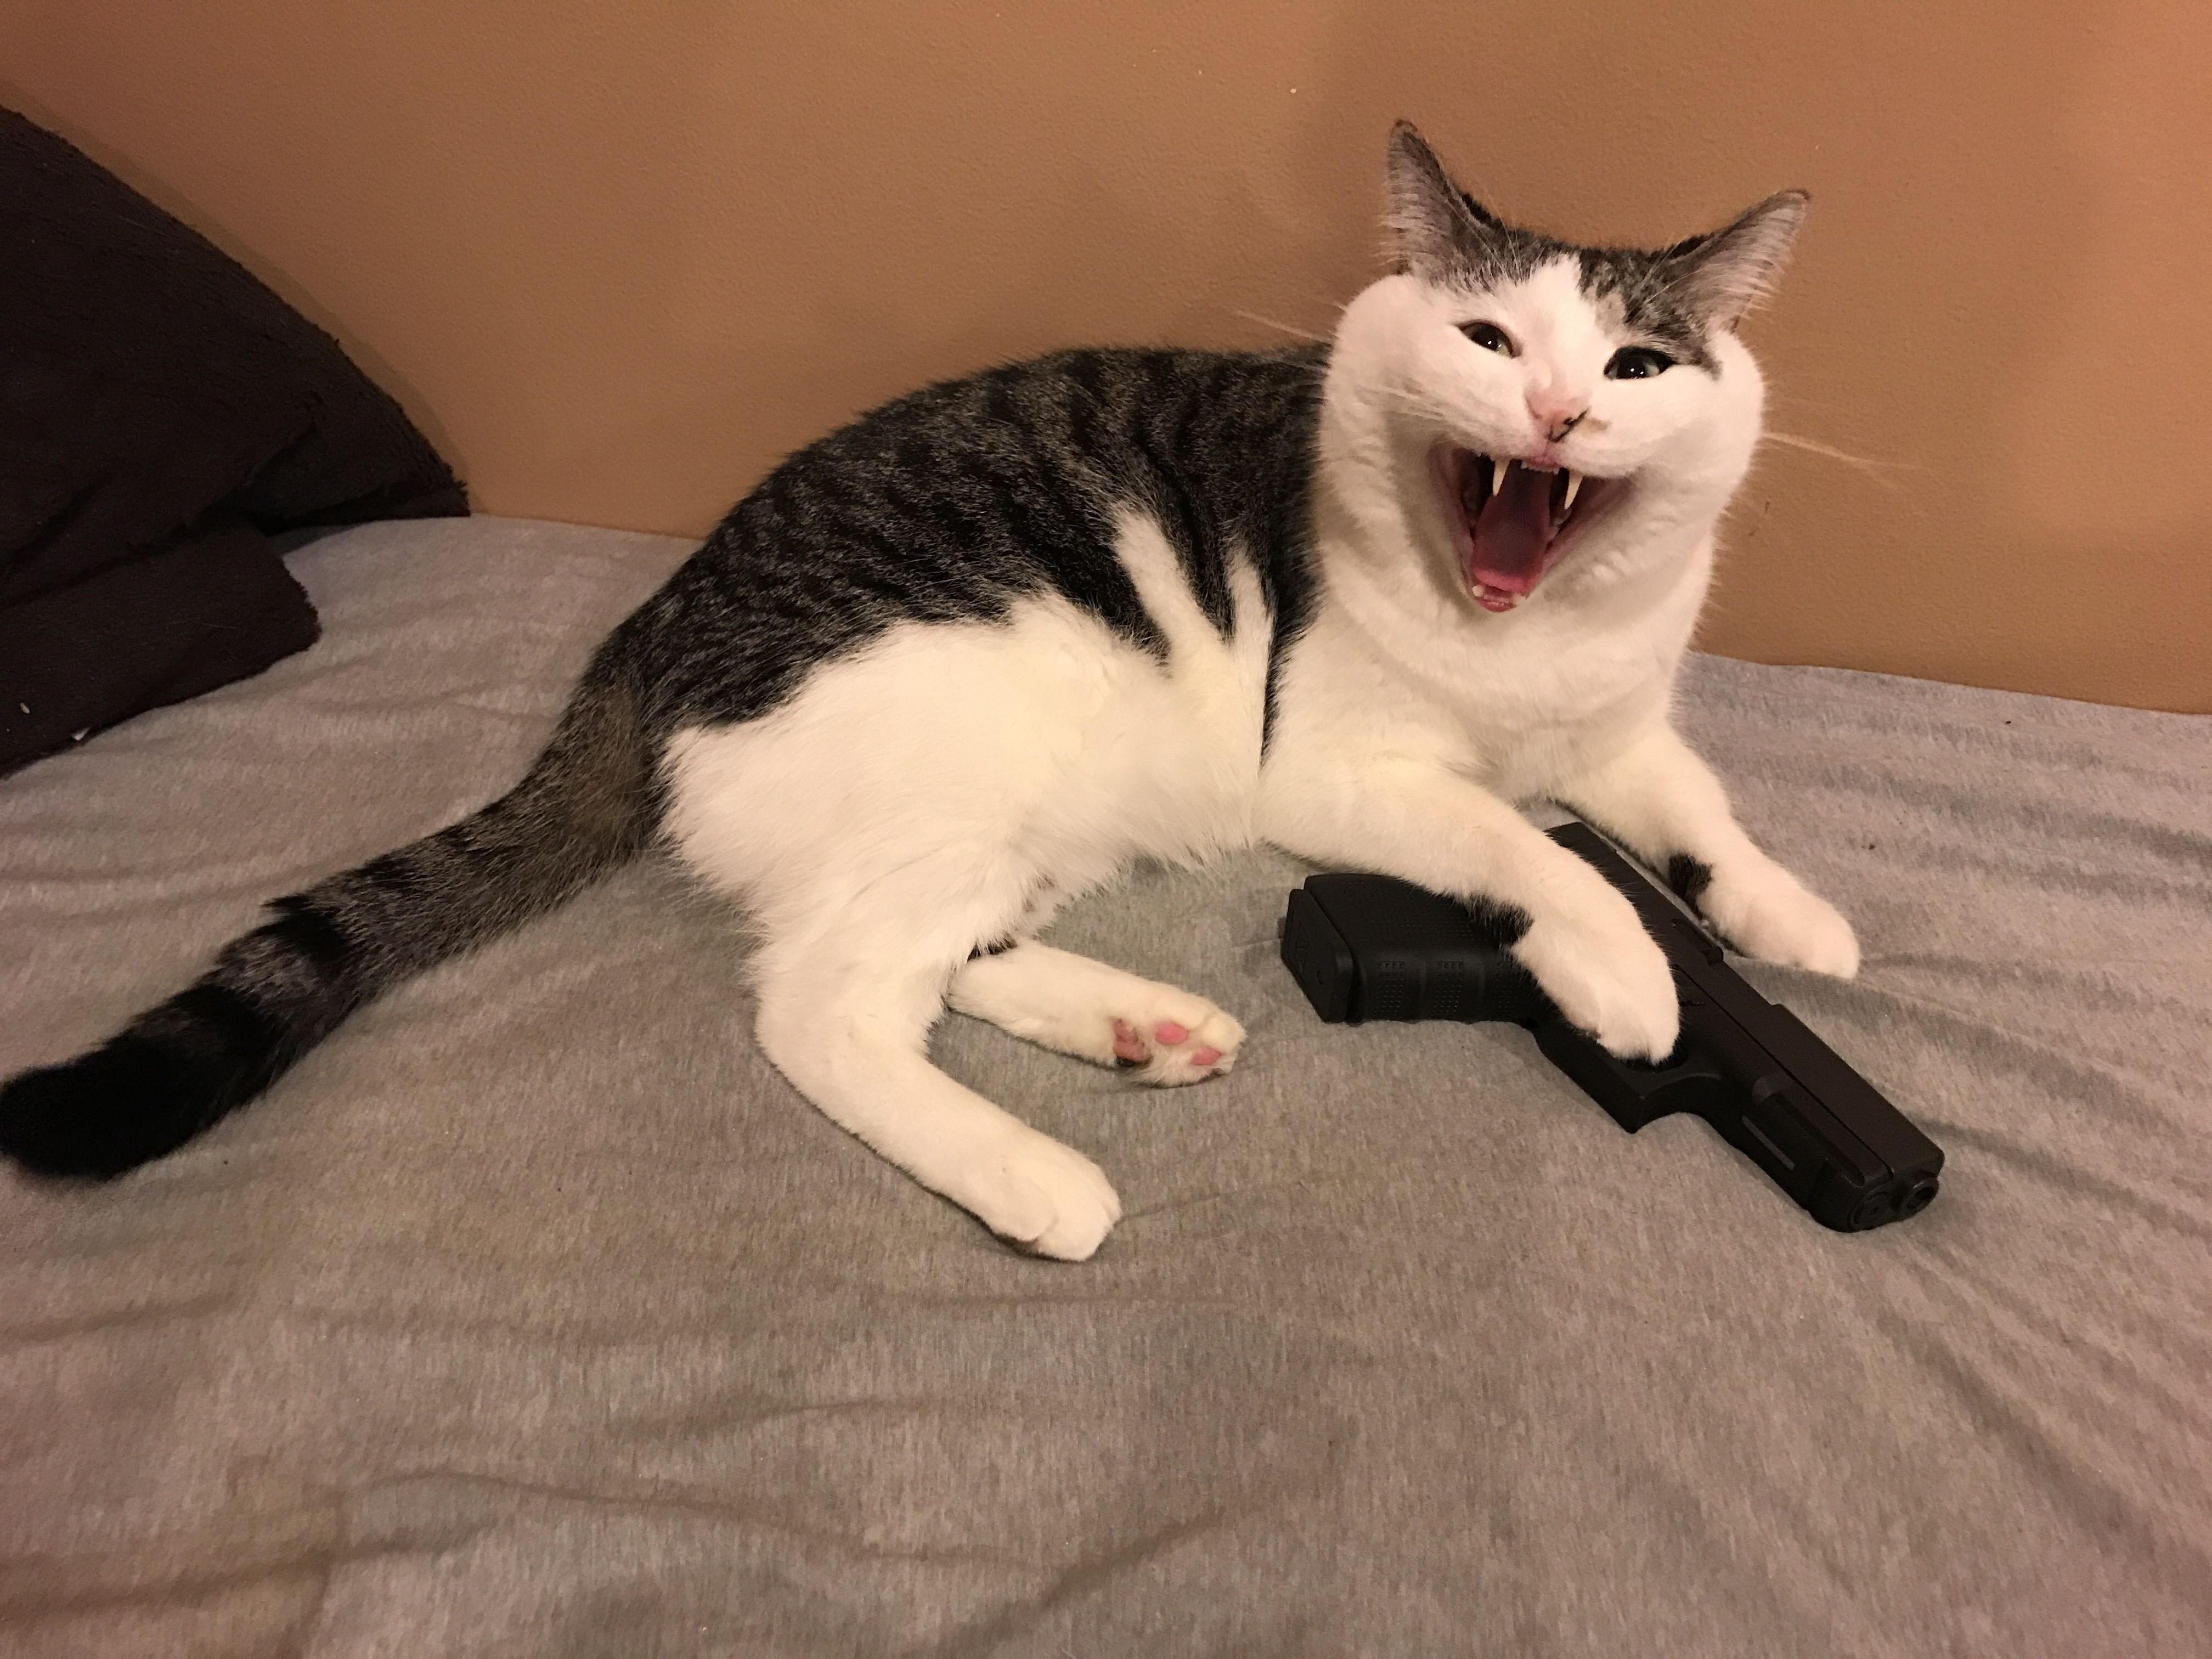 i told him cats can't own guns and he was not happy Cute